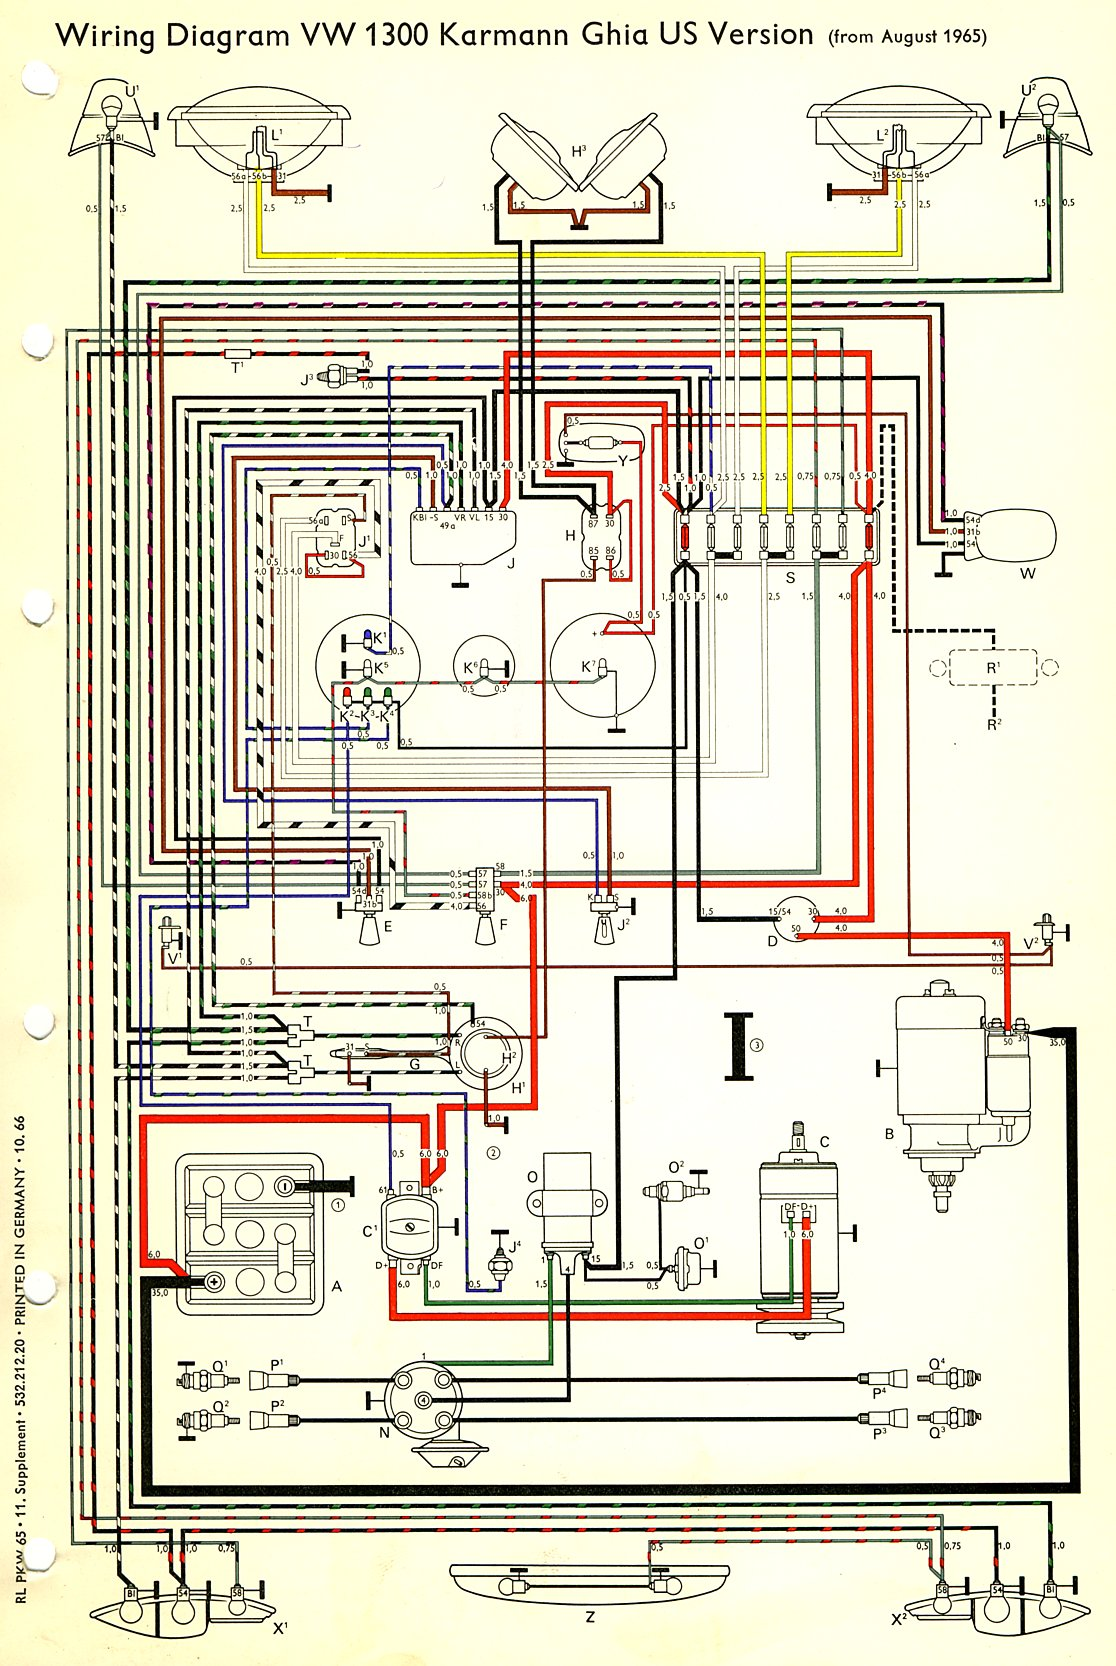 ghia_66_USA thesamba com karmann ghia wiring diagrams 1971 porsche 911 wiring diagram at gsmx.co